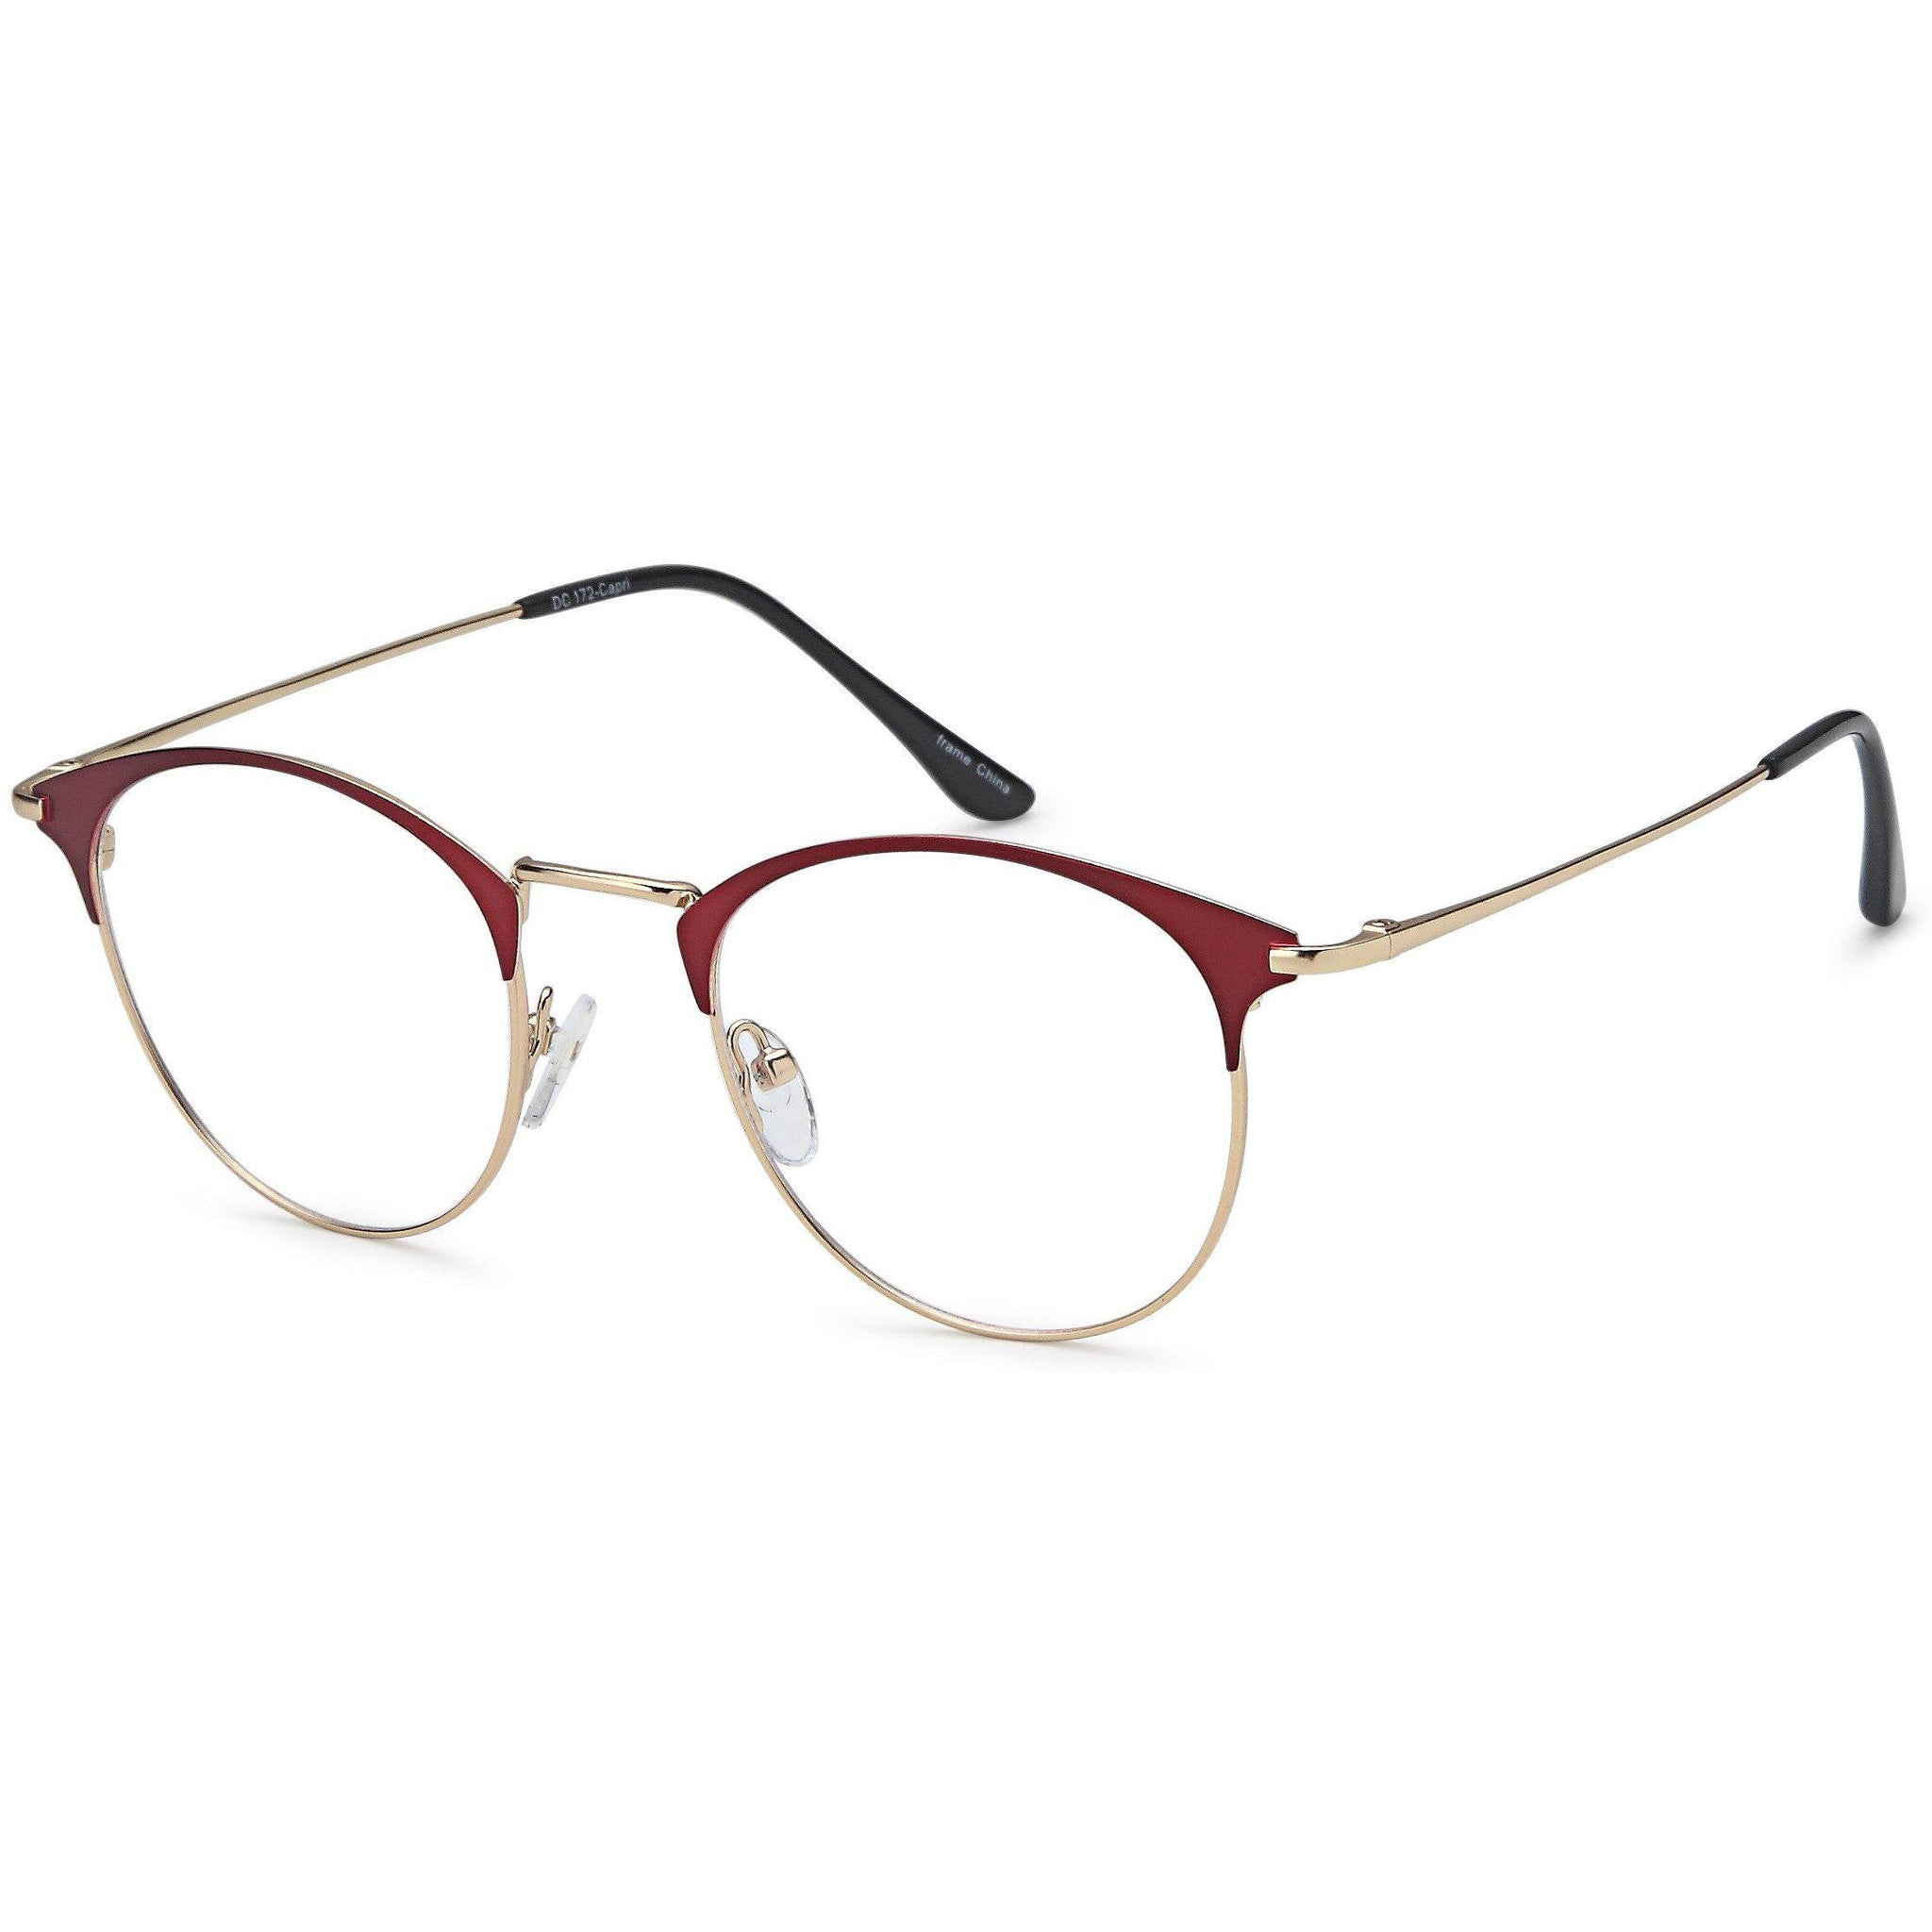 Di Caprio Prescription Glasses DC 172 Eyeglasses Frame - timetoshade